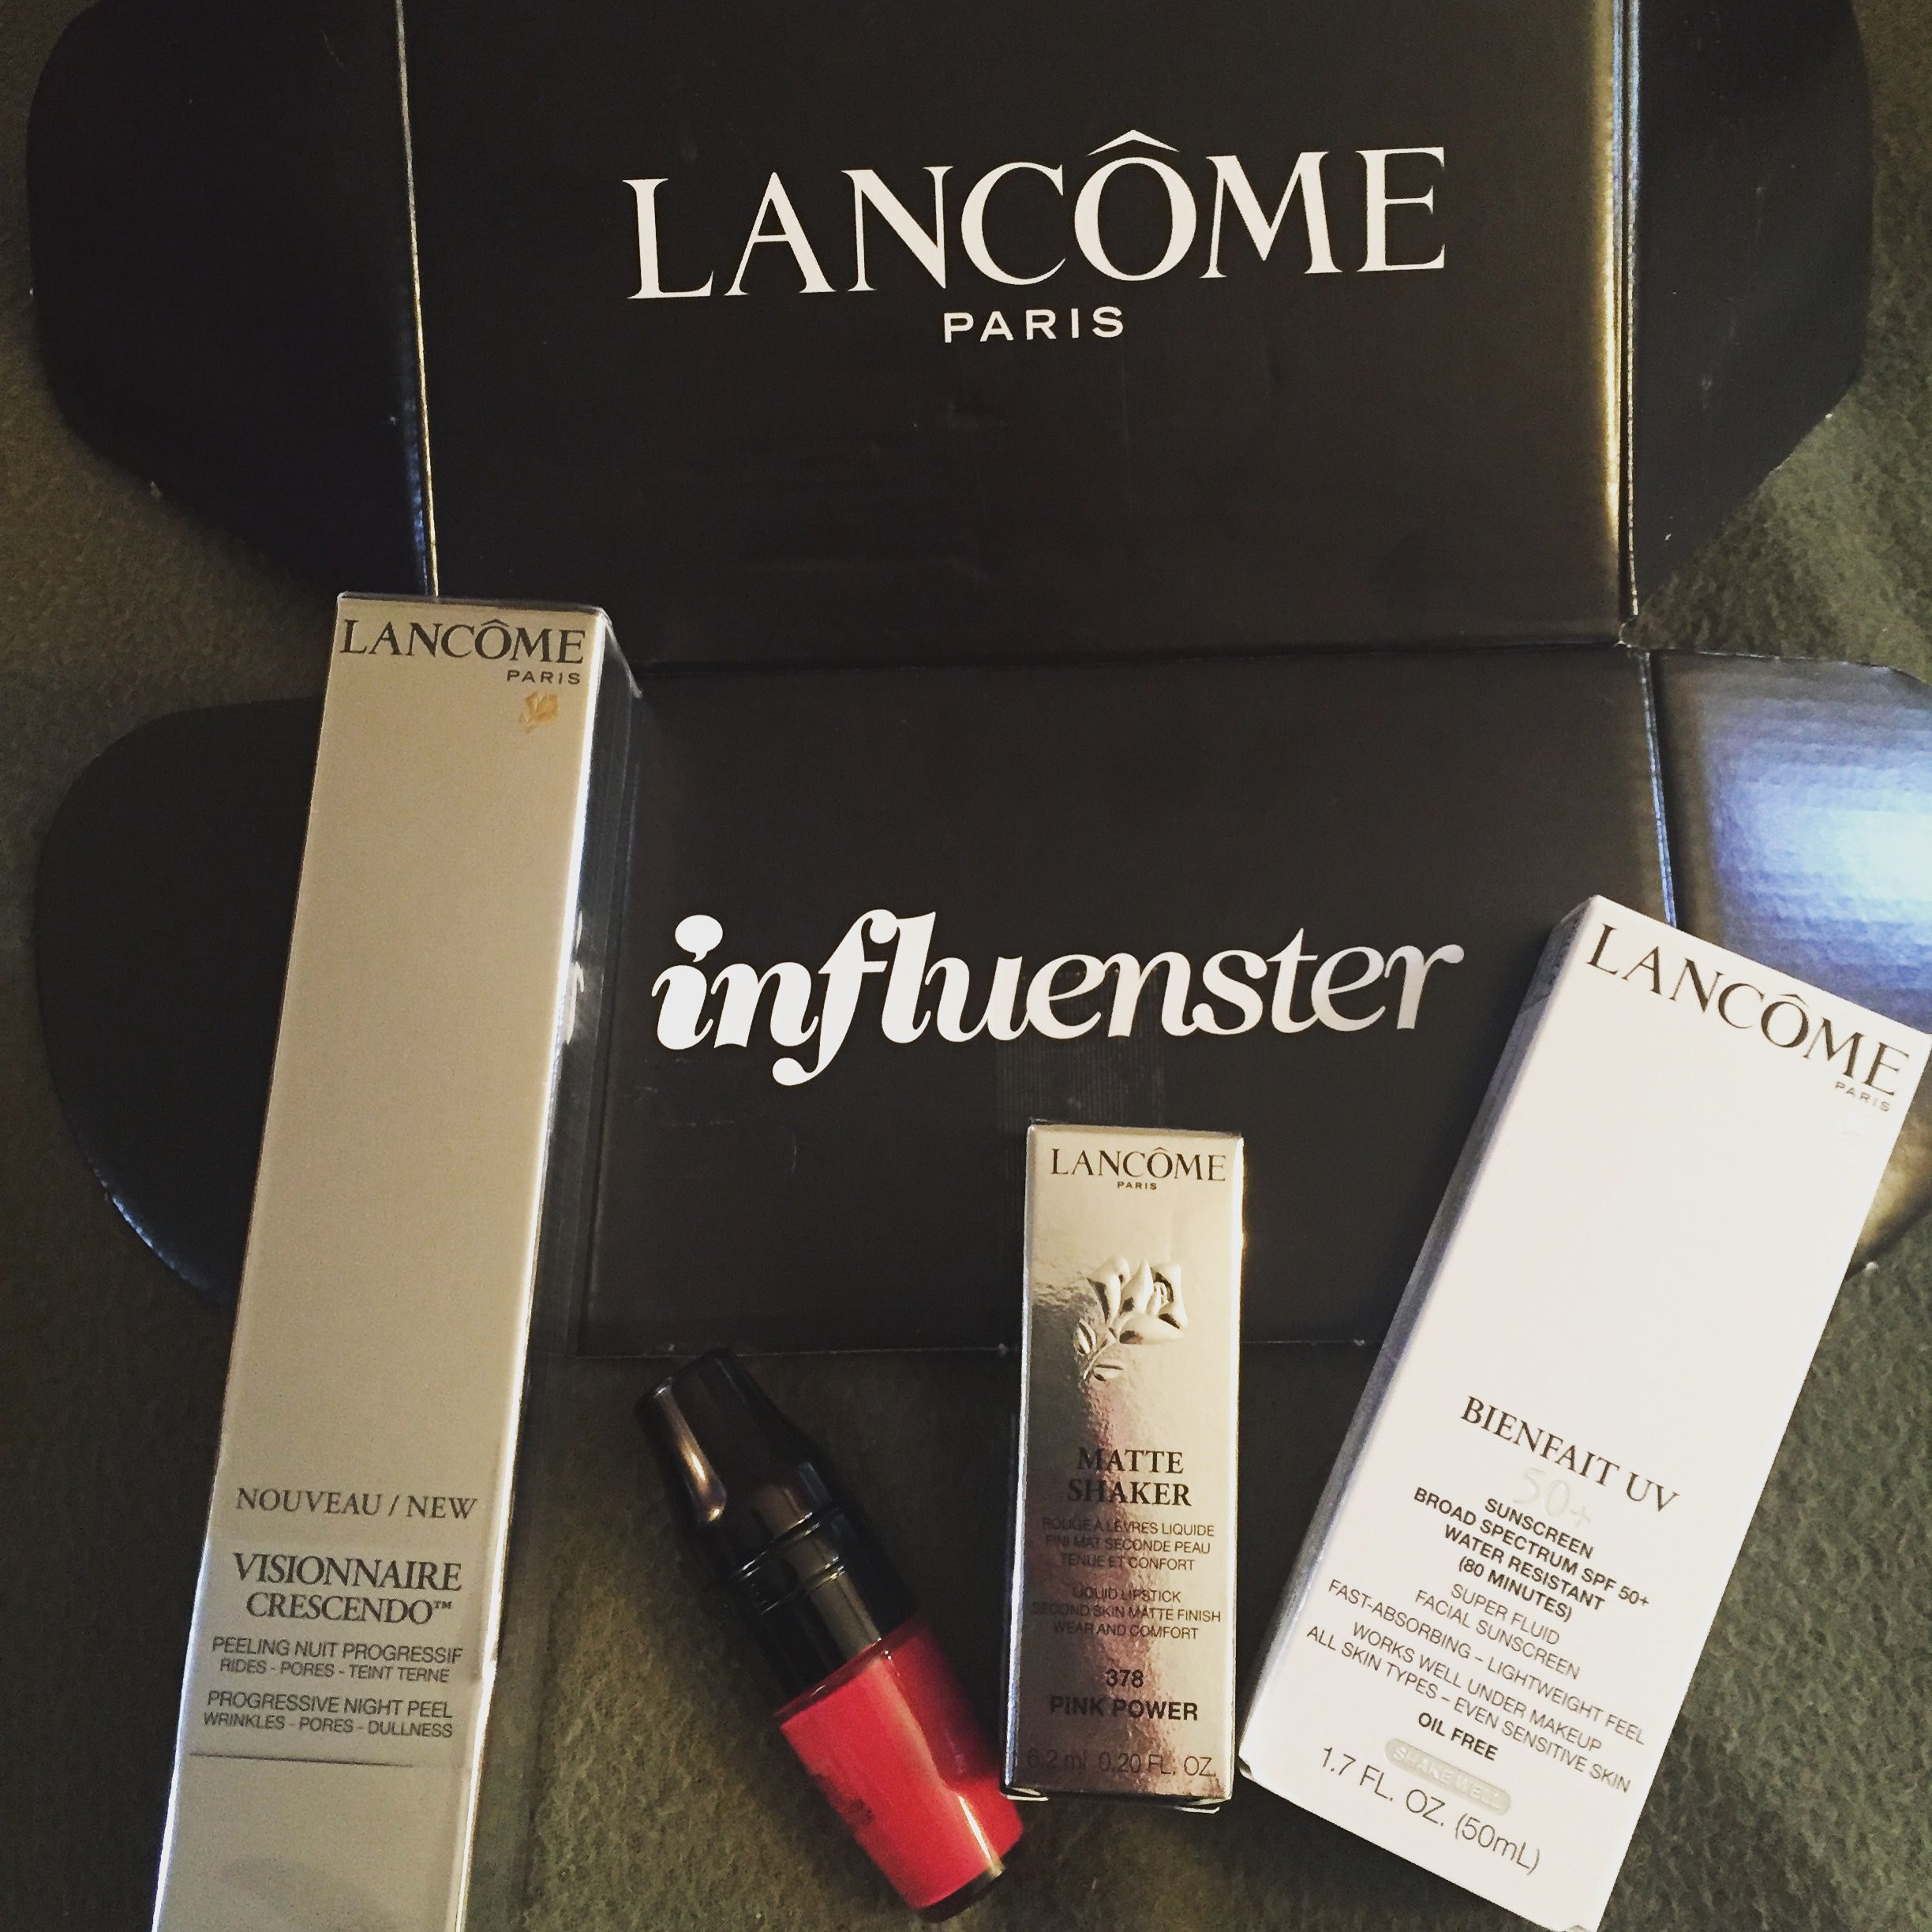 Thanks Influenster for the freebies to review! Want a chance at free product sign up for free www.influenster.com/r/2792748